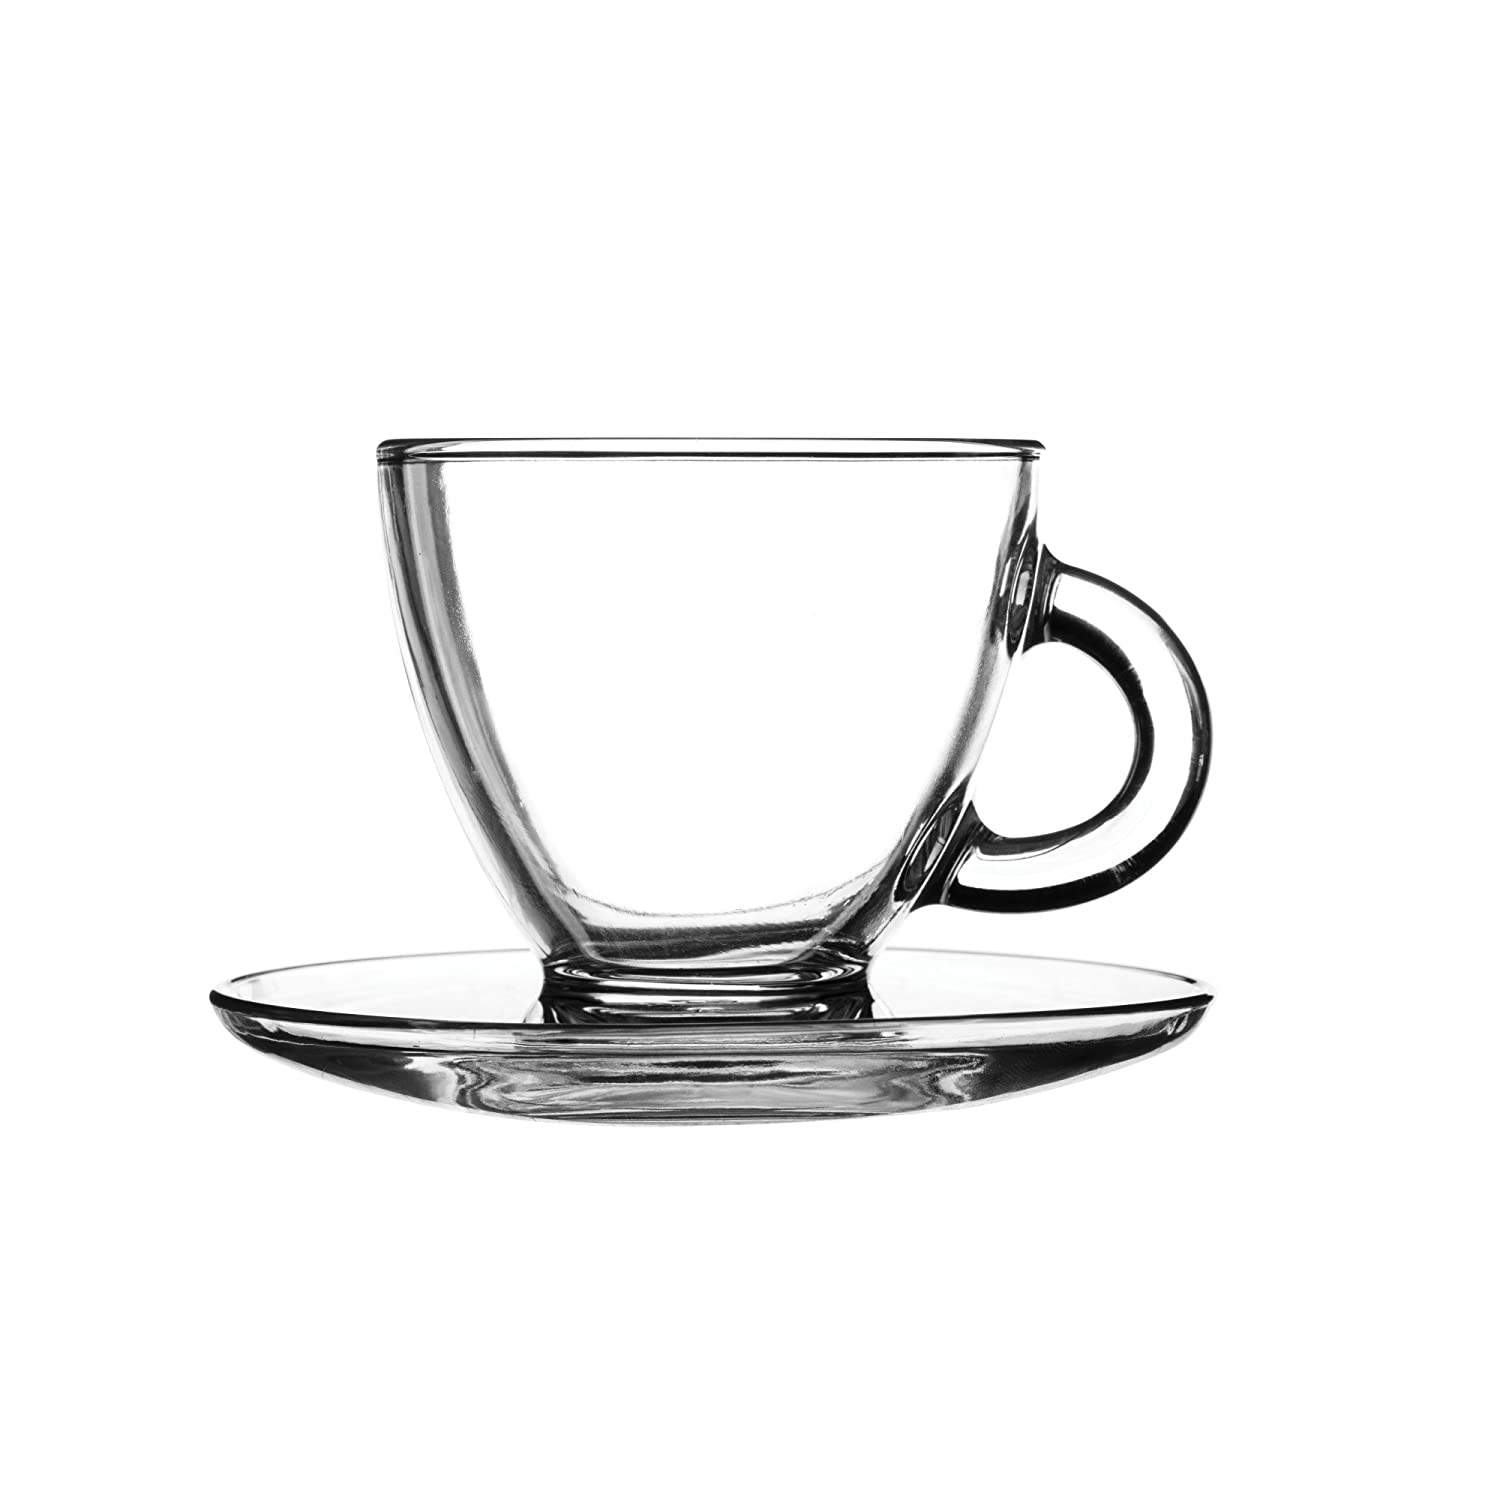 Glass espresso coffee cups uk - Entertain Cappuccino Cups Saucers 6 9oz 195ml Set Of 2 Glass Coffee Cups Coffee Glasses Amazon Co Uk Business Industry Science